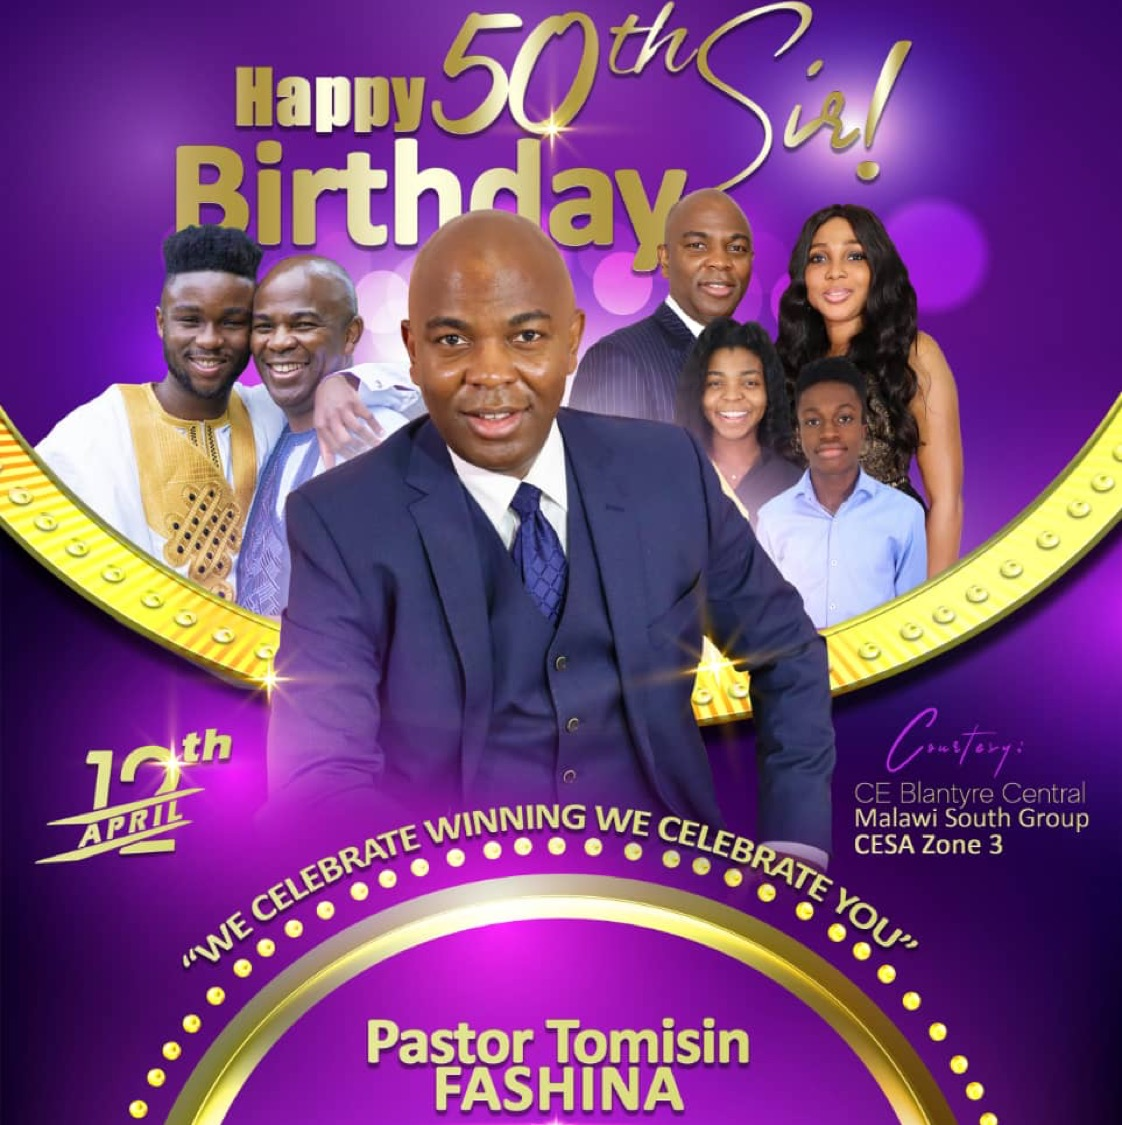 It's Pastor T's birthday. I